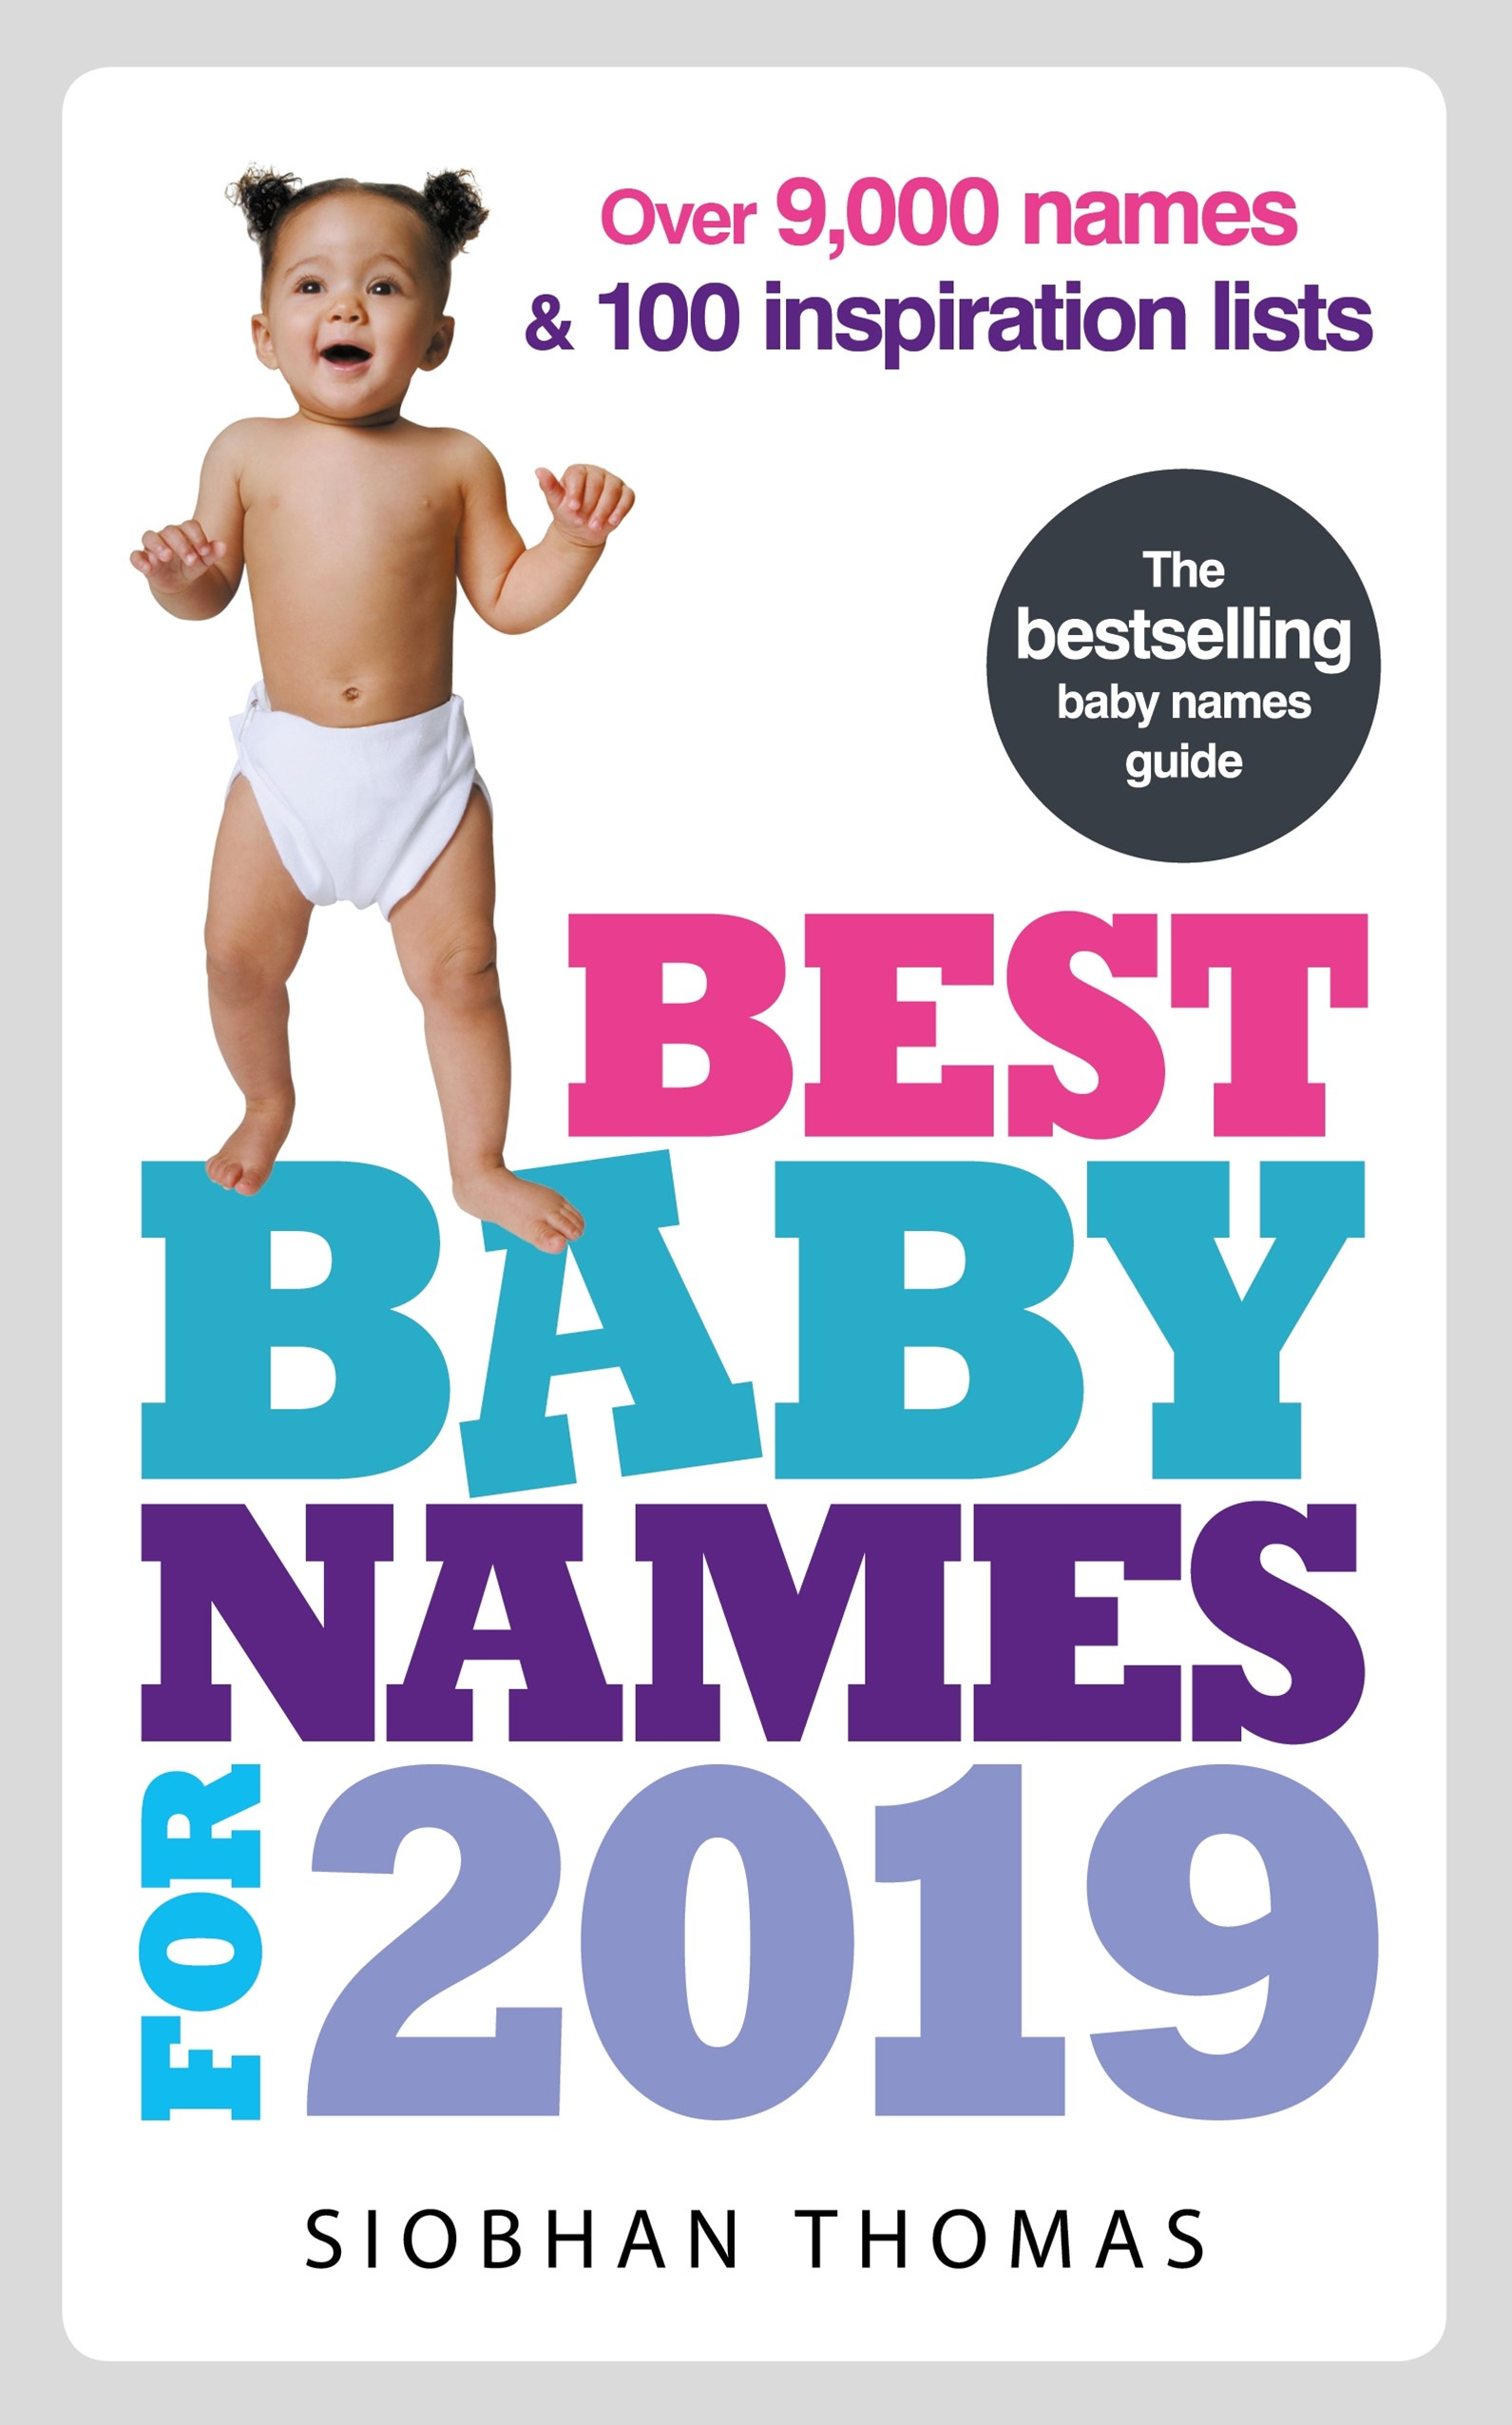 Best Baby Names for 2019: Over 8,000 names and 100 inspiration lists